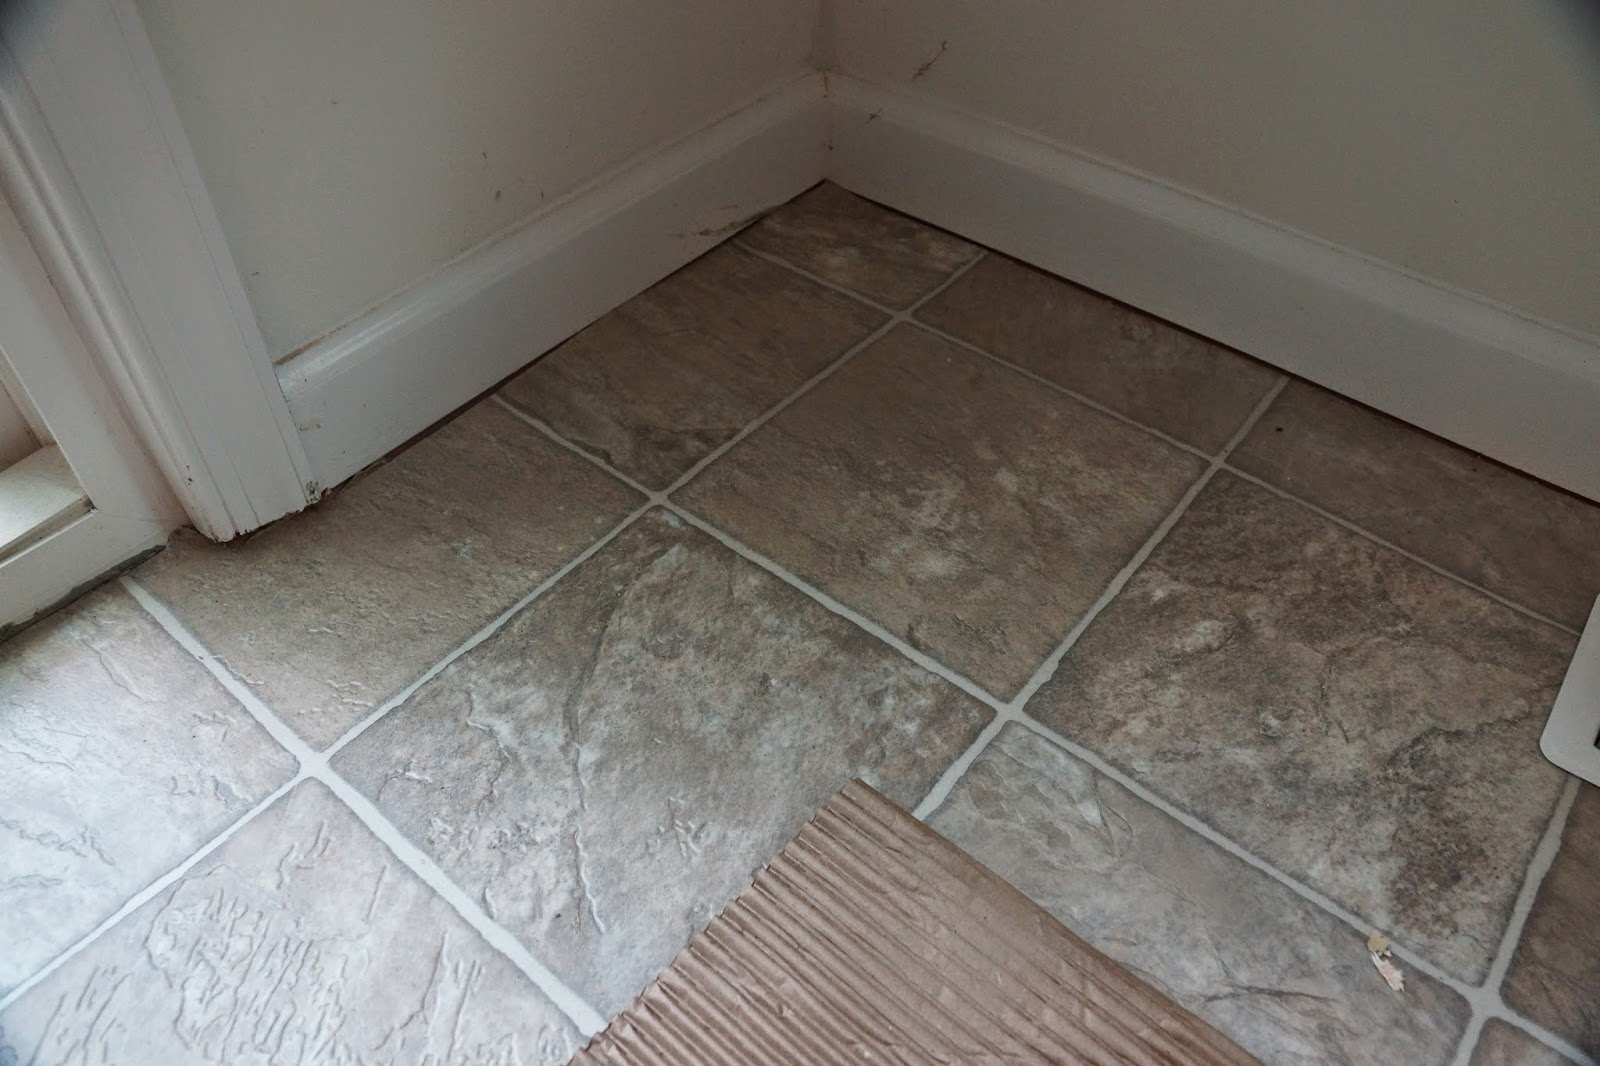 Picture of the morning room flooring